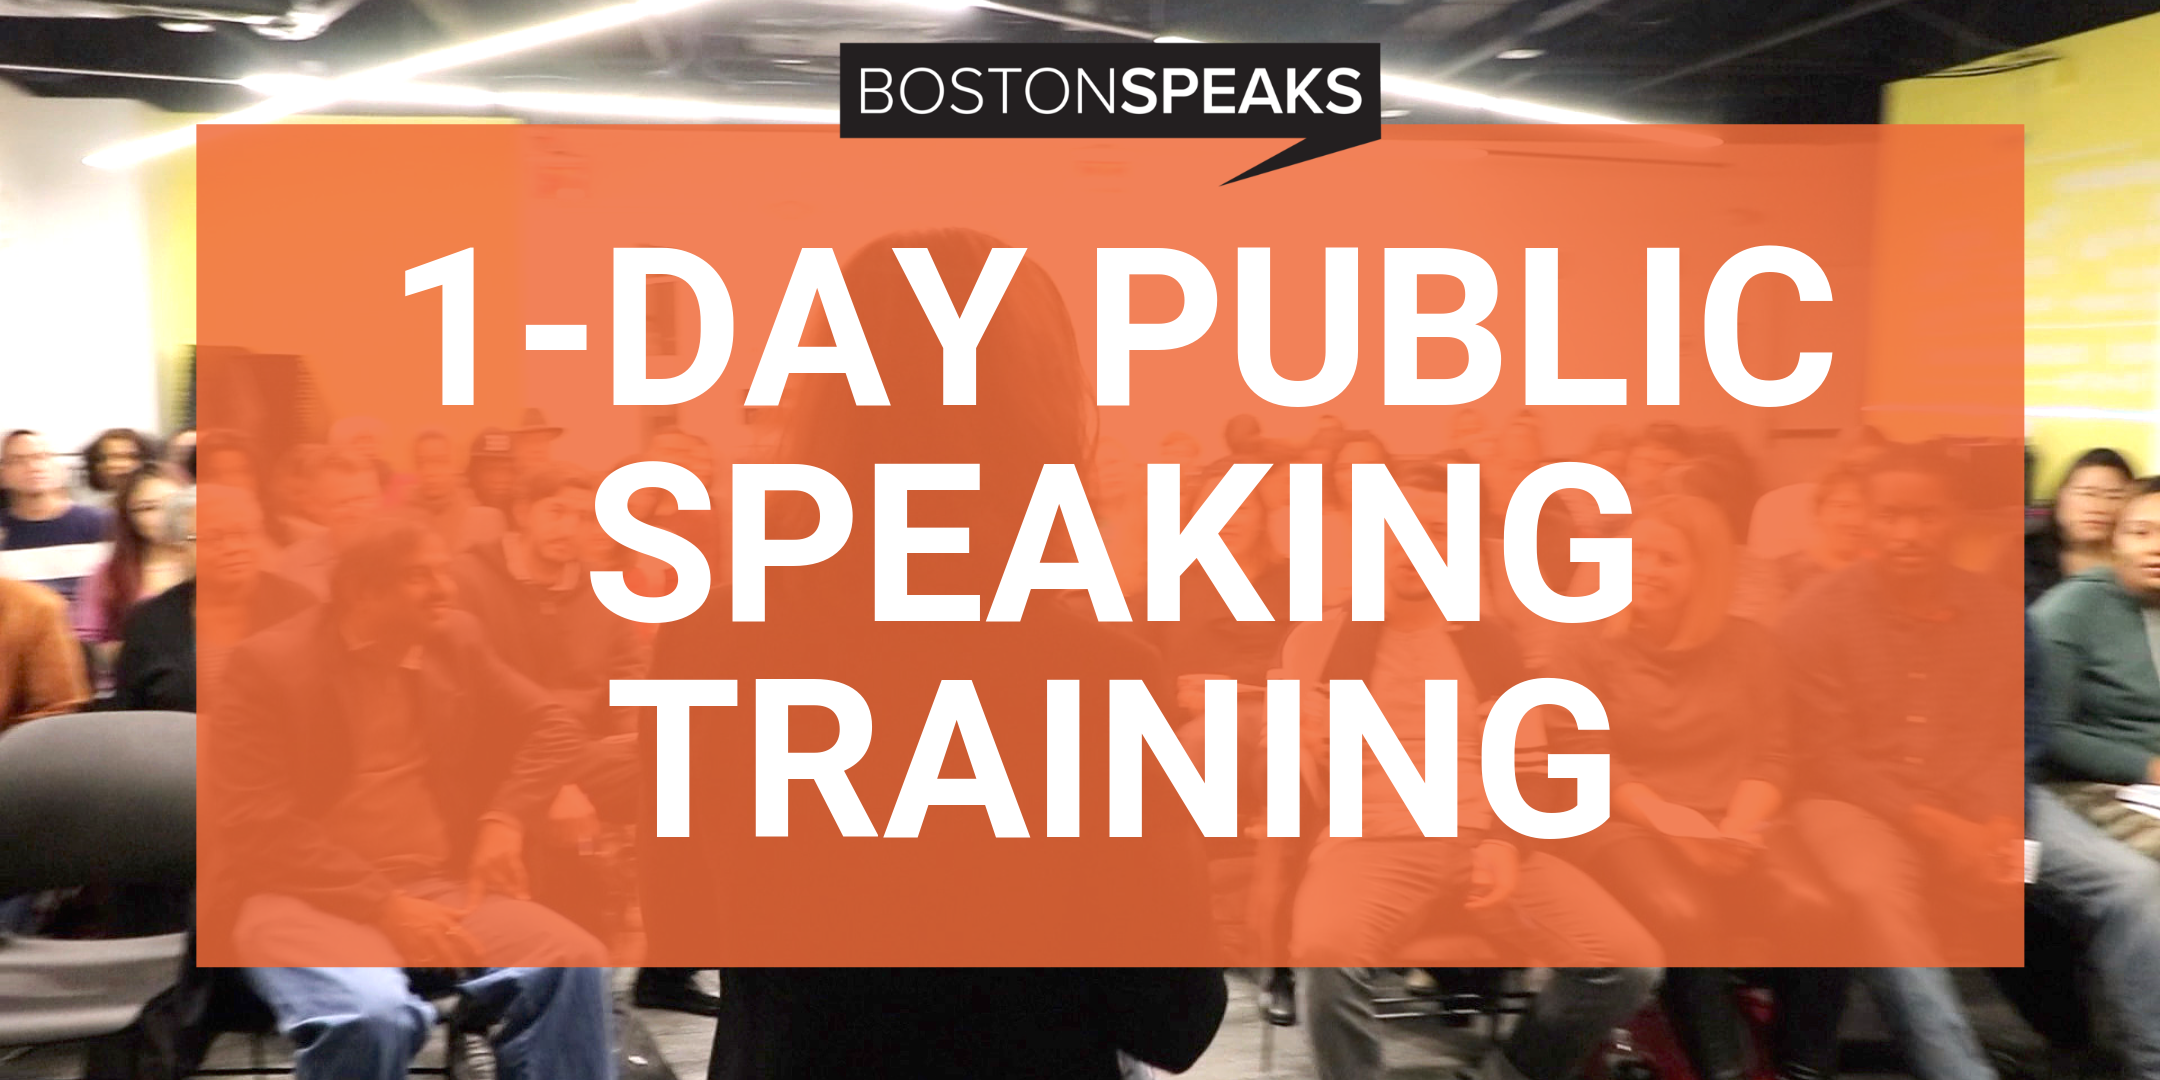 Make Public Speaking Your Superpower - PUBLIC SPEAKING IS ONE OF THE MOST IMPORTANT TOOLS YOU HAVE TO INFLUENCE AS A LEADER, EXPERT AND BUSINESS PROFESSIONAL. LEARN HOW TO HONE THIS SKILL TO MAKE IT WORK FOR YOU.